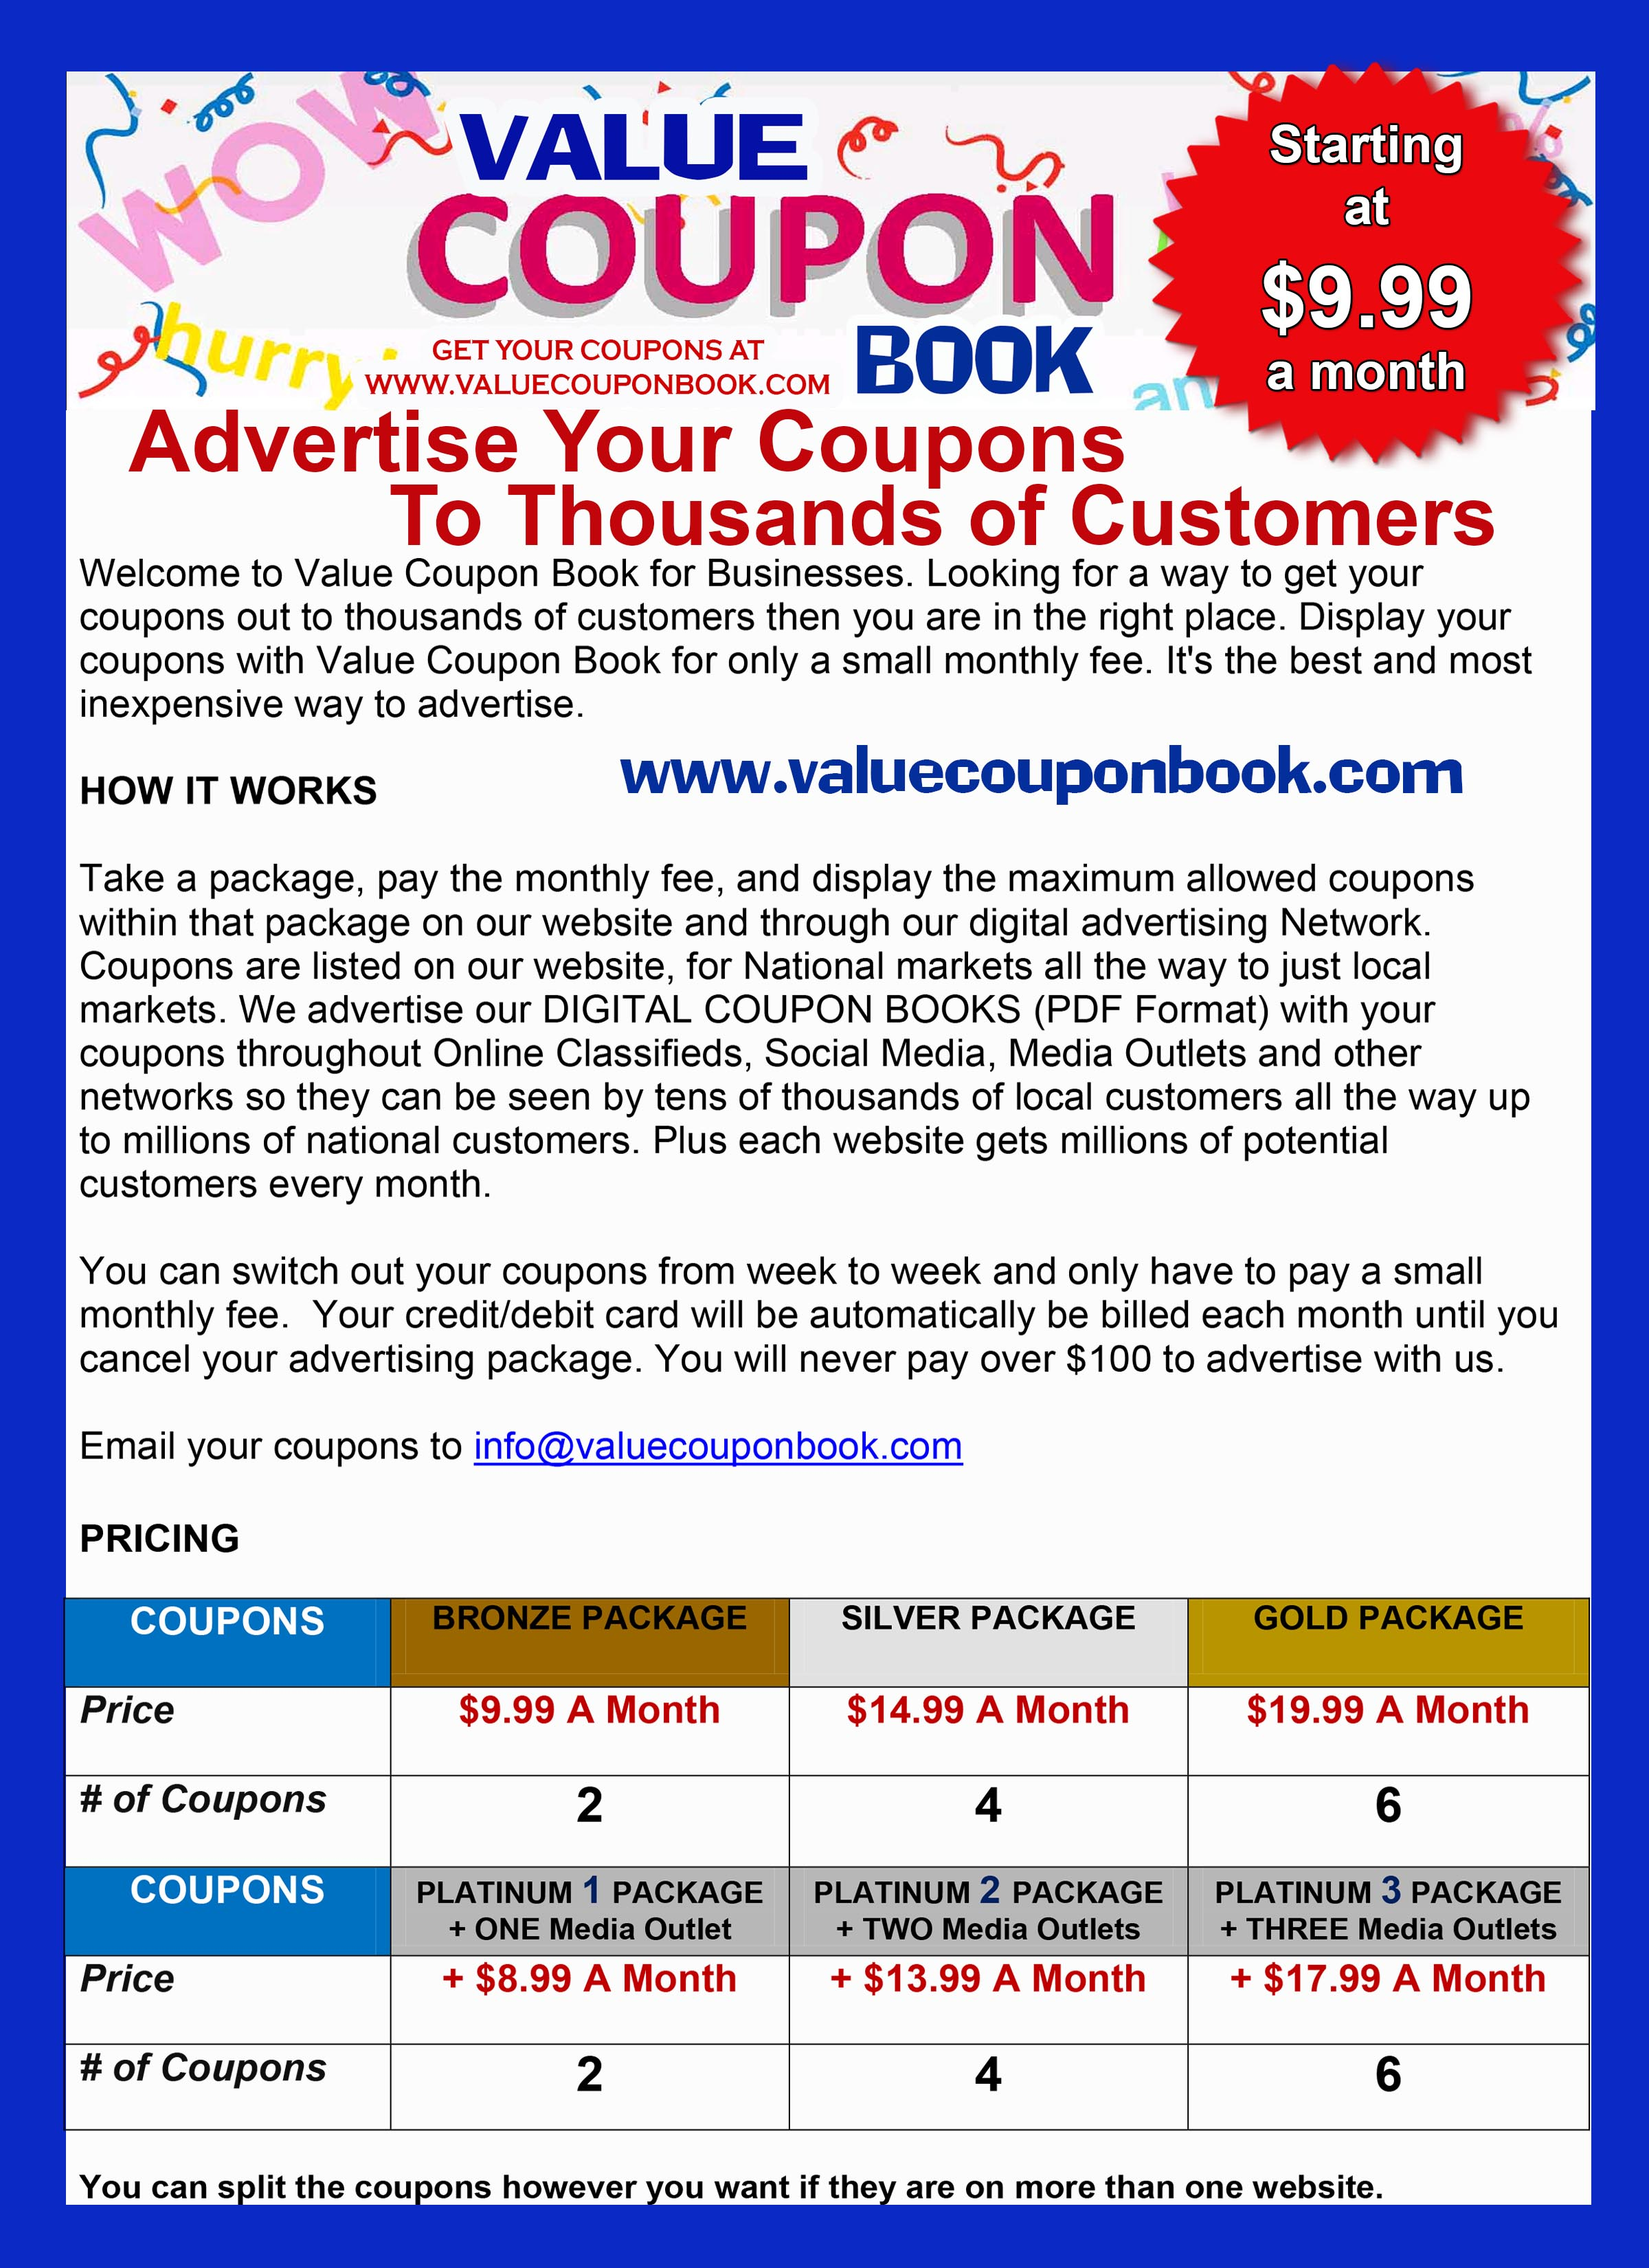 Reach a Million Customers for $9.99 | Advertise Today